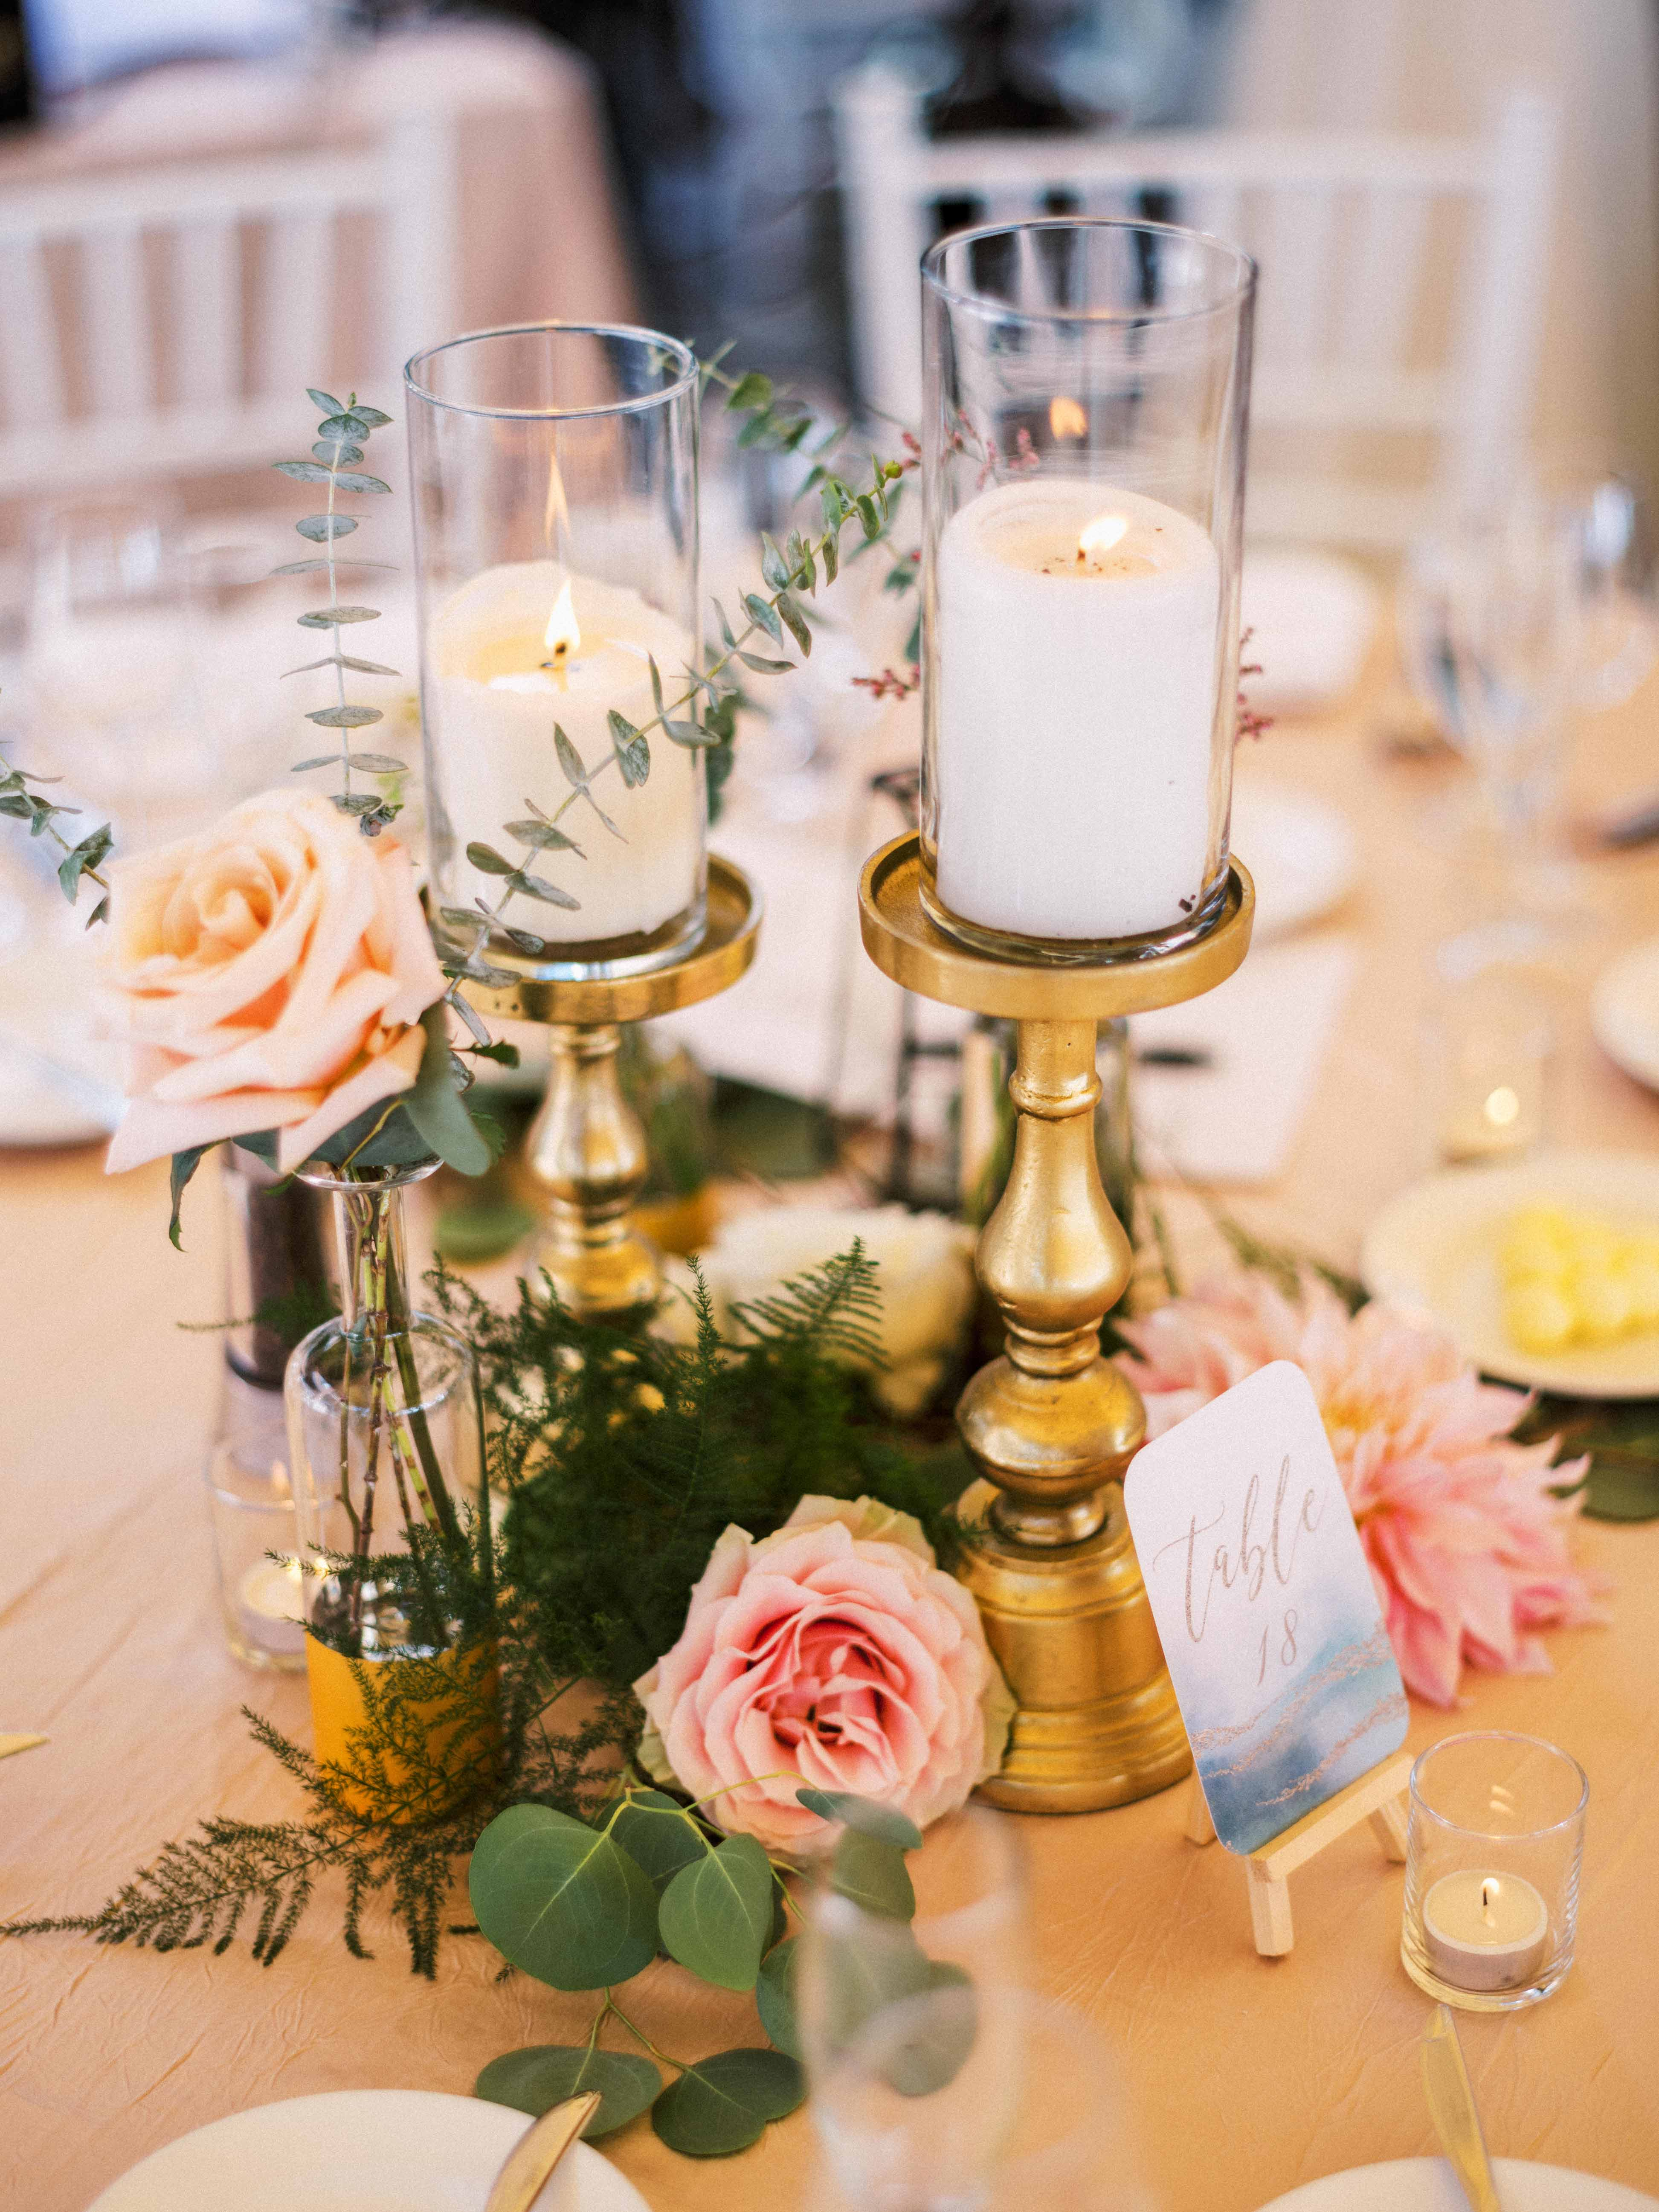 Wedding centerpiece with gold candles, blooms, and greenery - Woodmark Hotel Wedding by Flora Nova Design Seattle